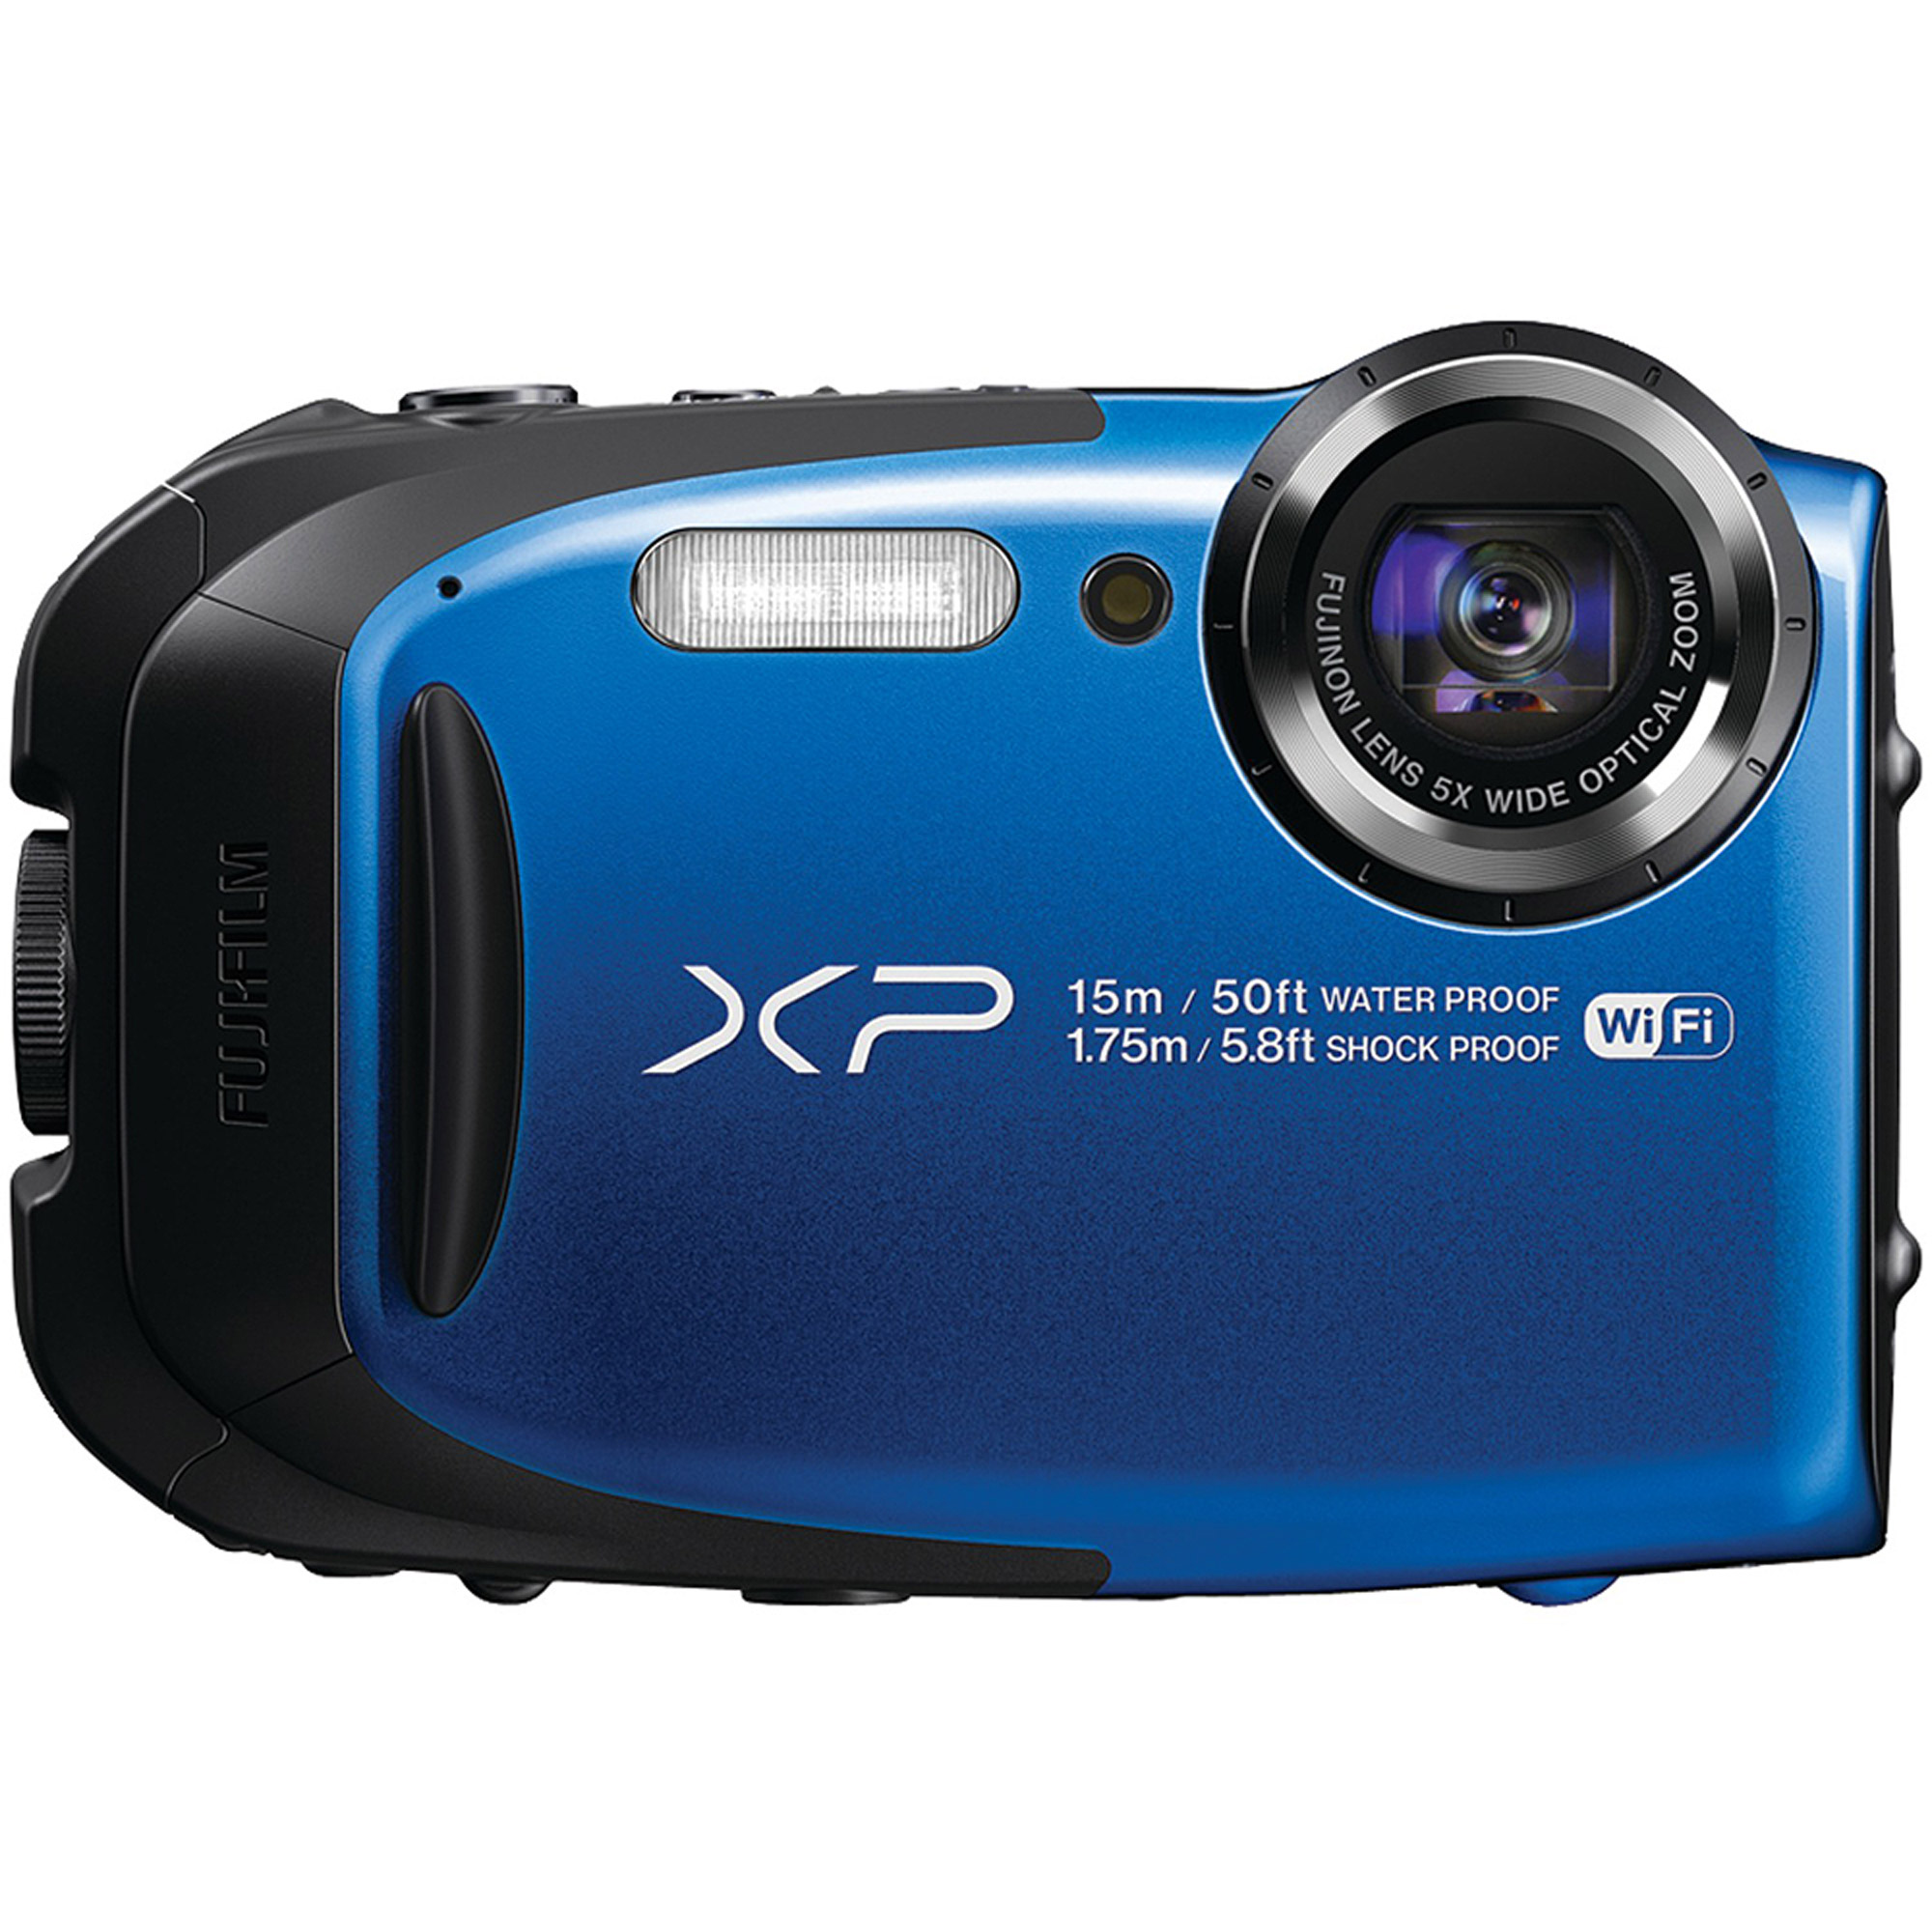 Fujifilm FinePix Blue XP80 Digital Camera with 16 Megapixels and 5x Optical Zoom